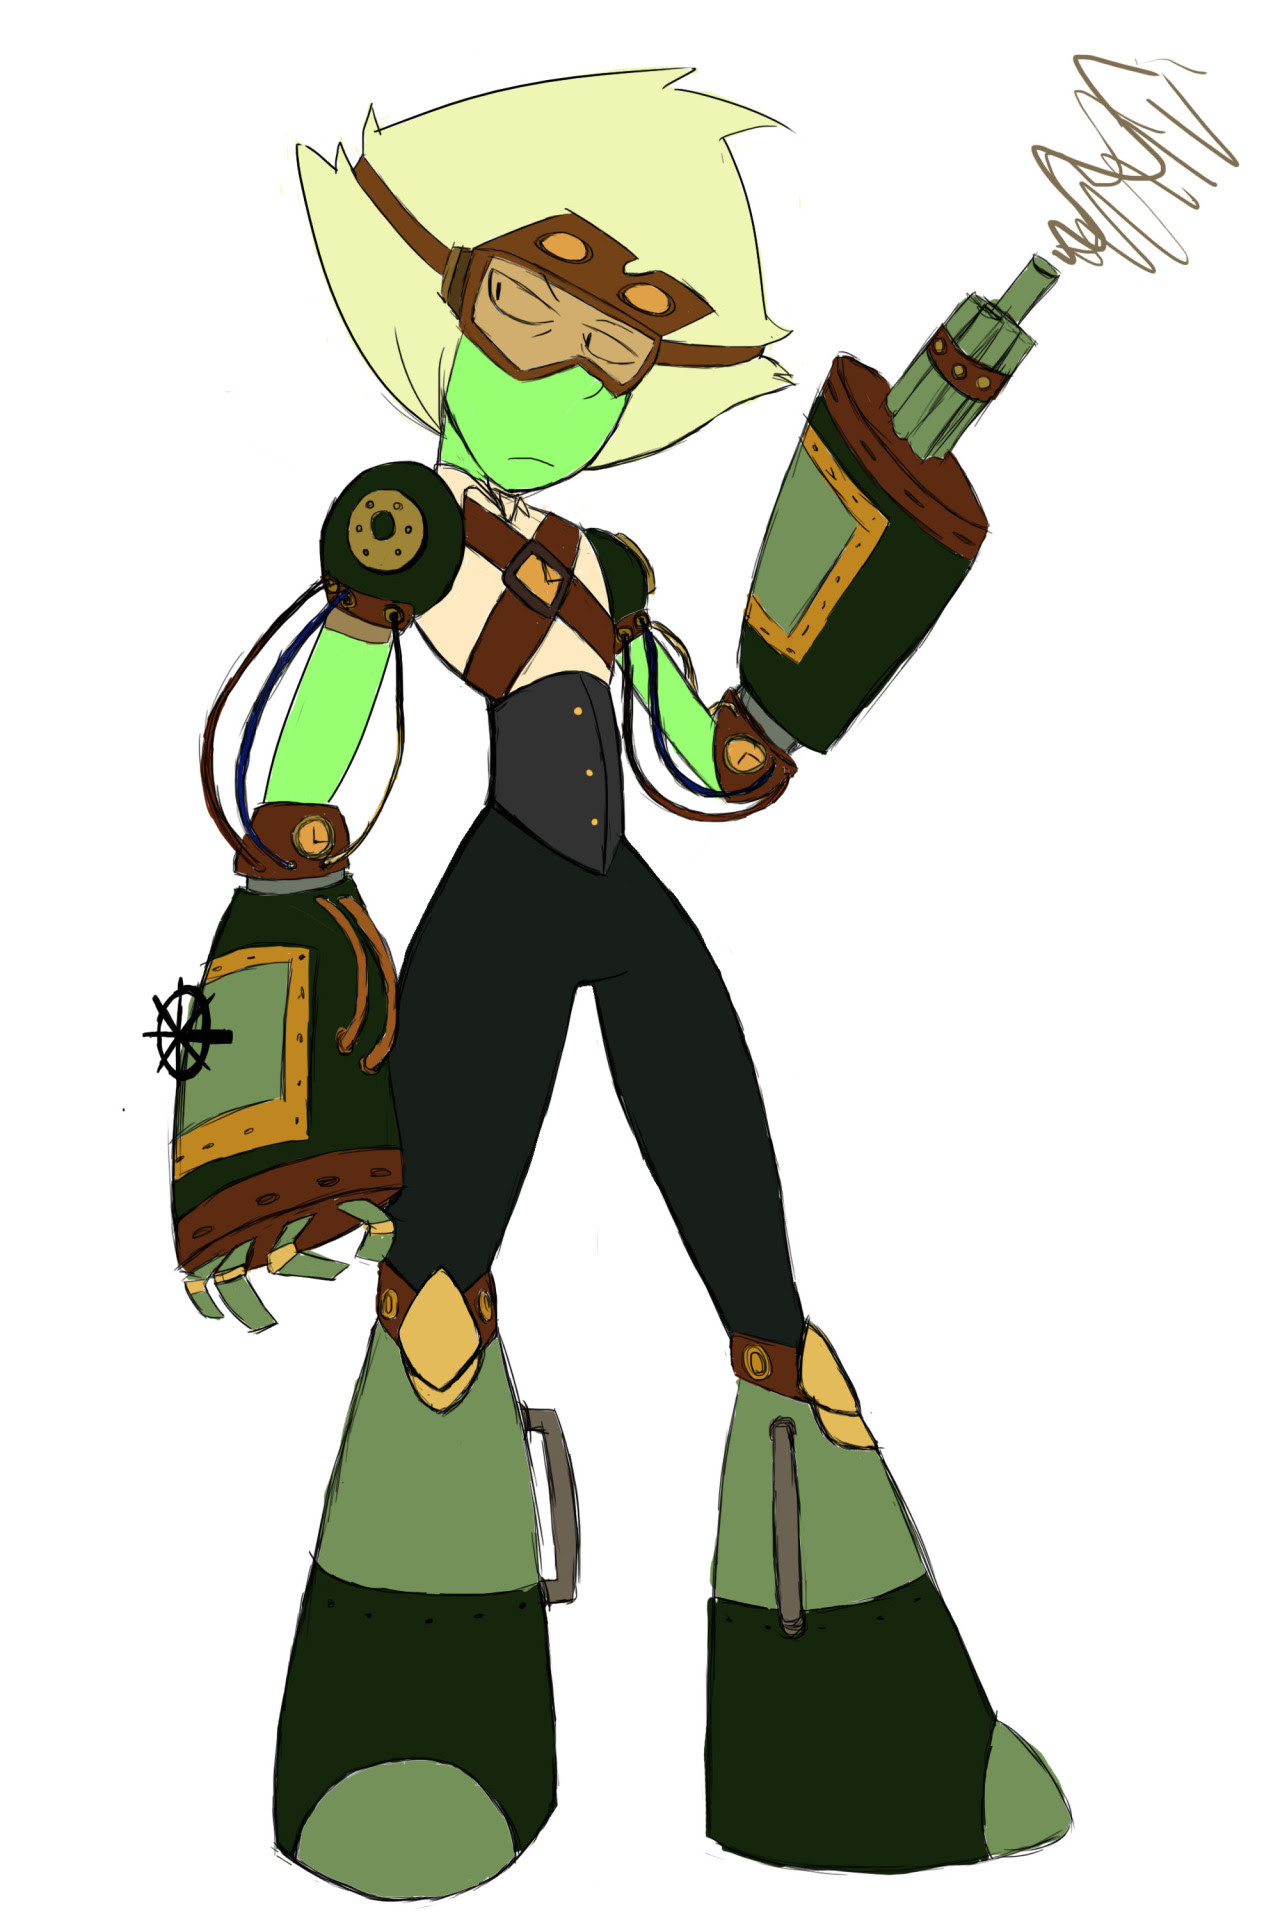 We had an assigment where we had to draw a fictional character in steampunk style…So I decided to pick Peridot